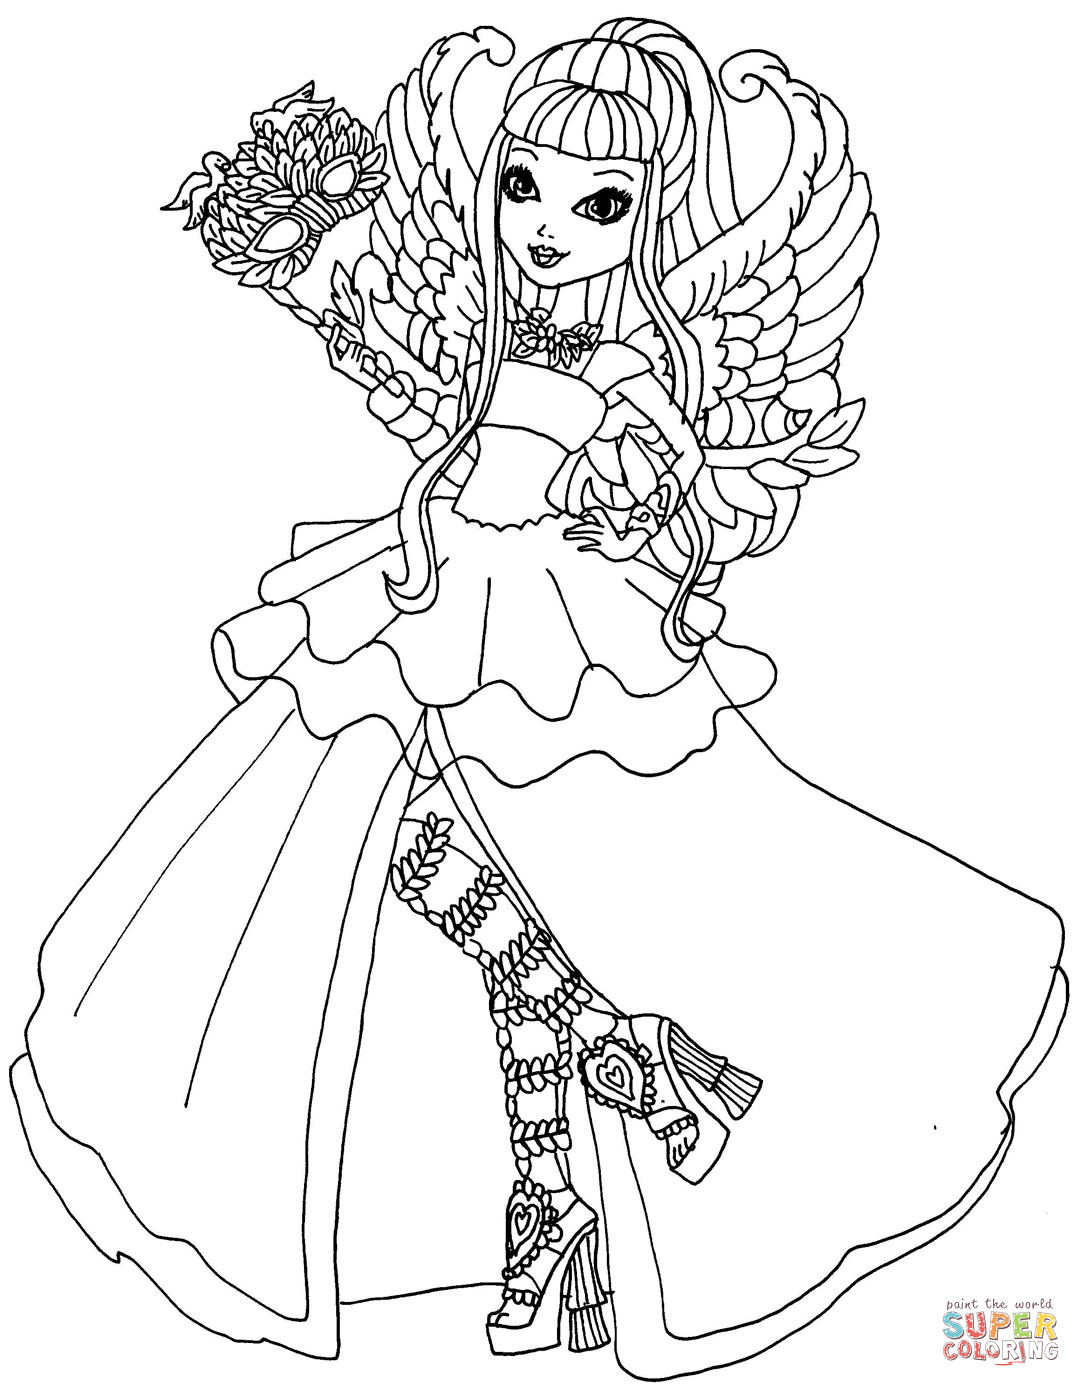 1081x1387 Ever After High Coloring Pages Free Stuning Apple White Acpra